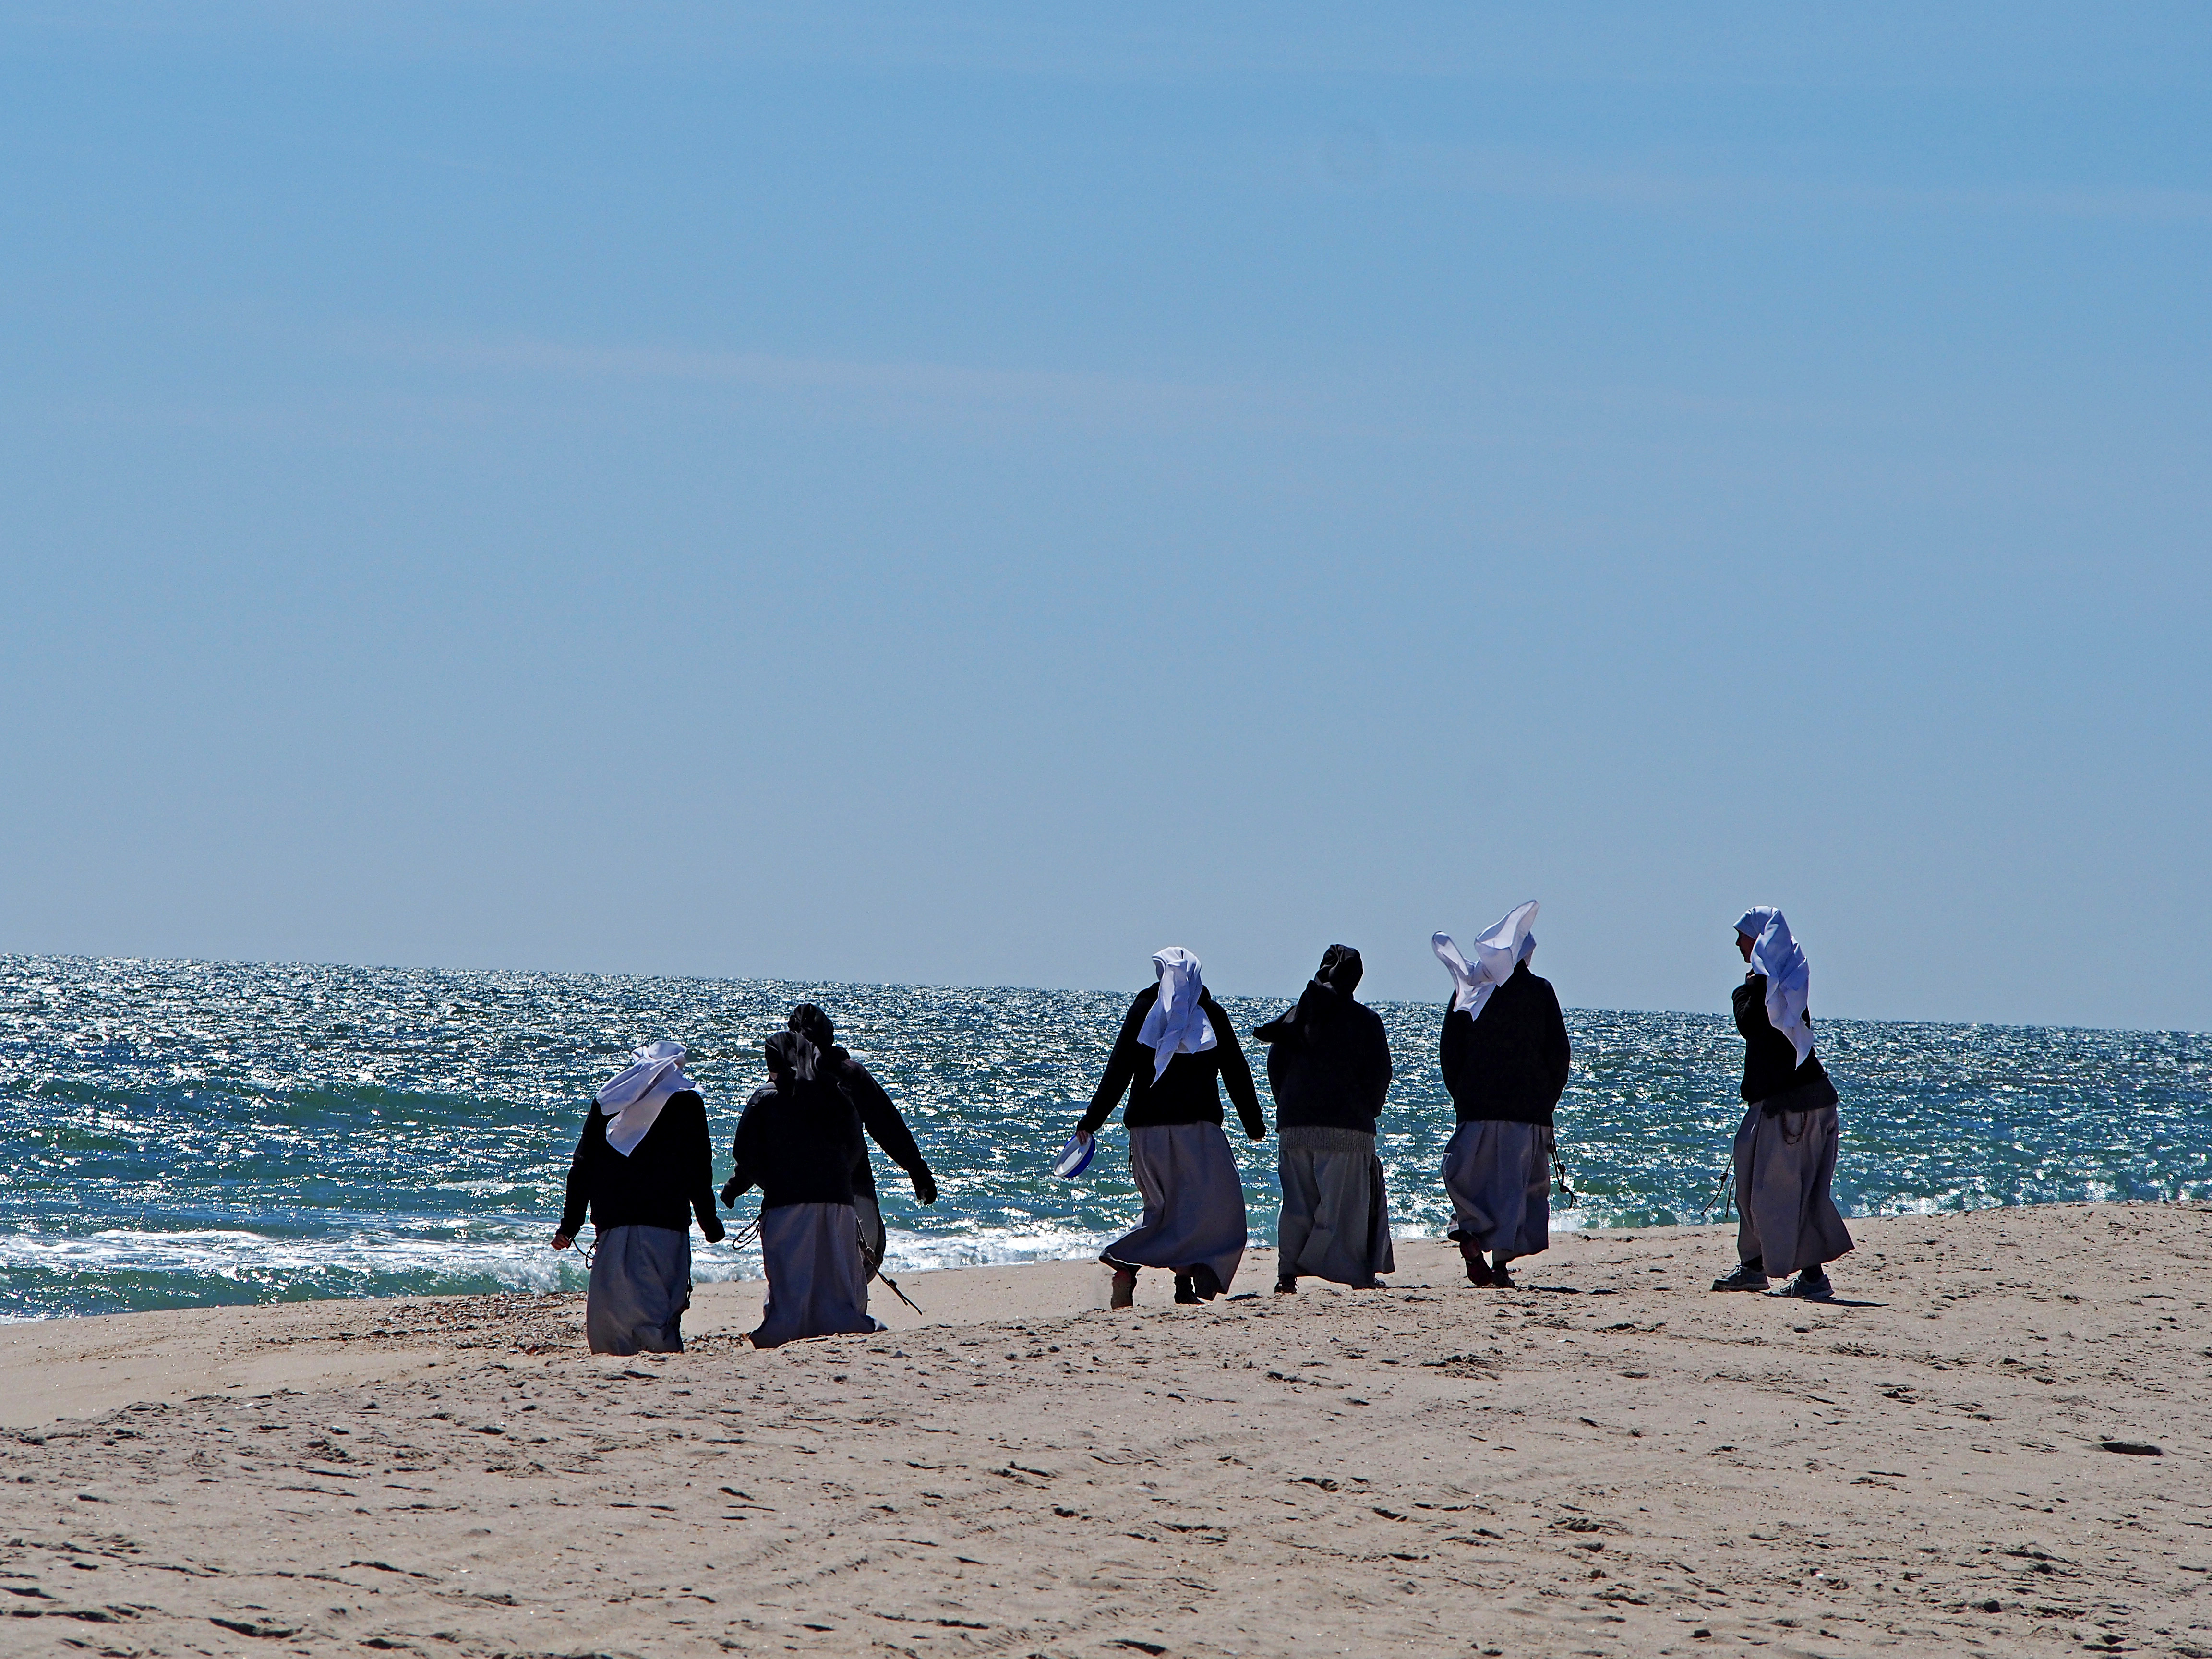 Nuns with a Frisbee.